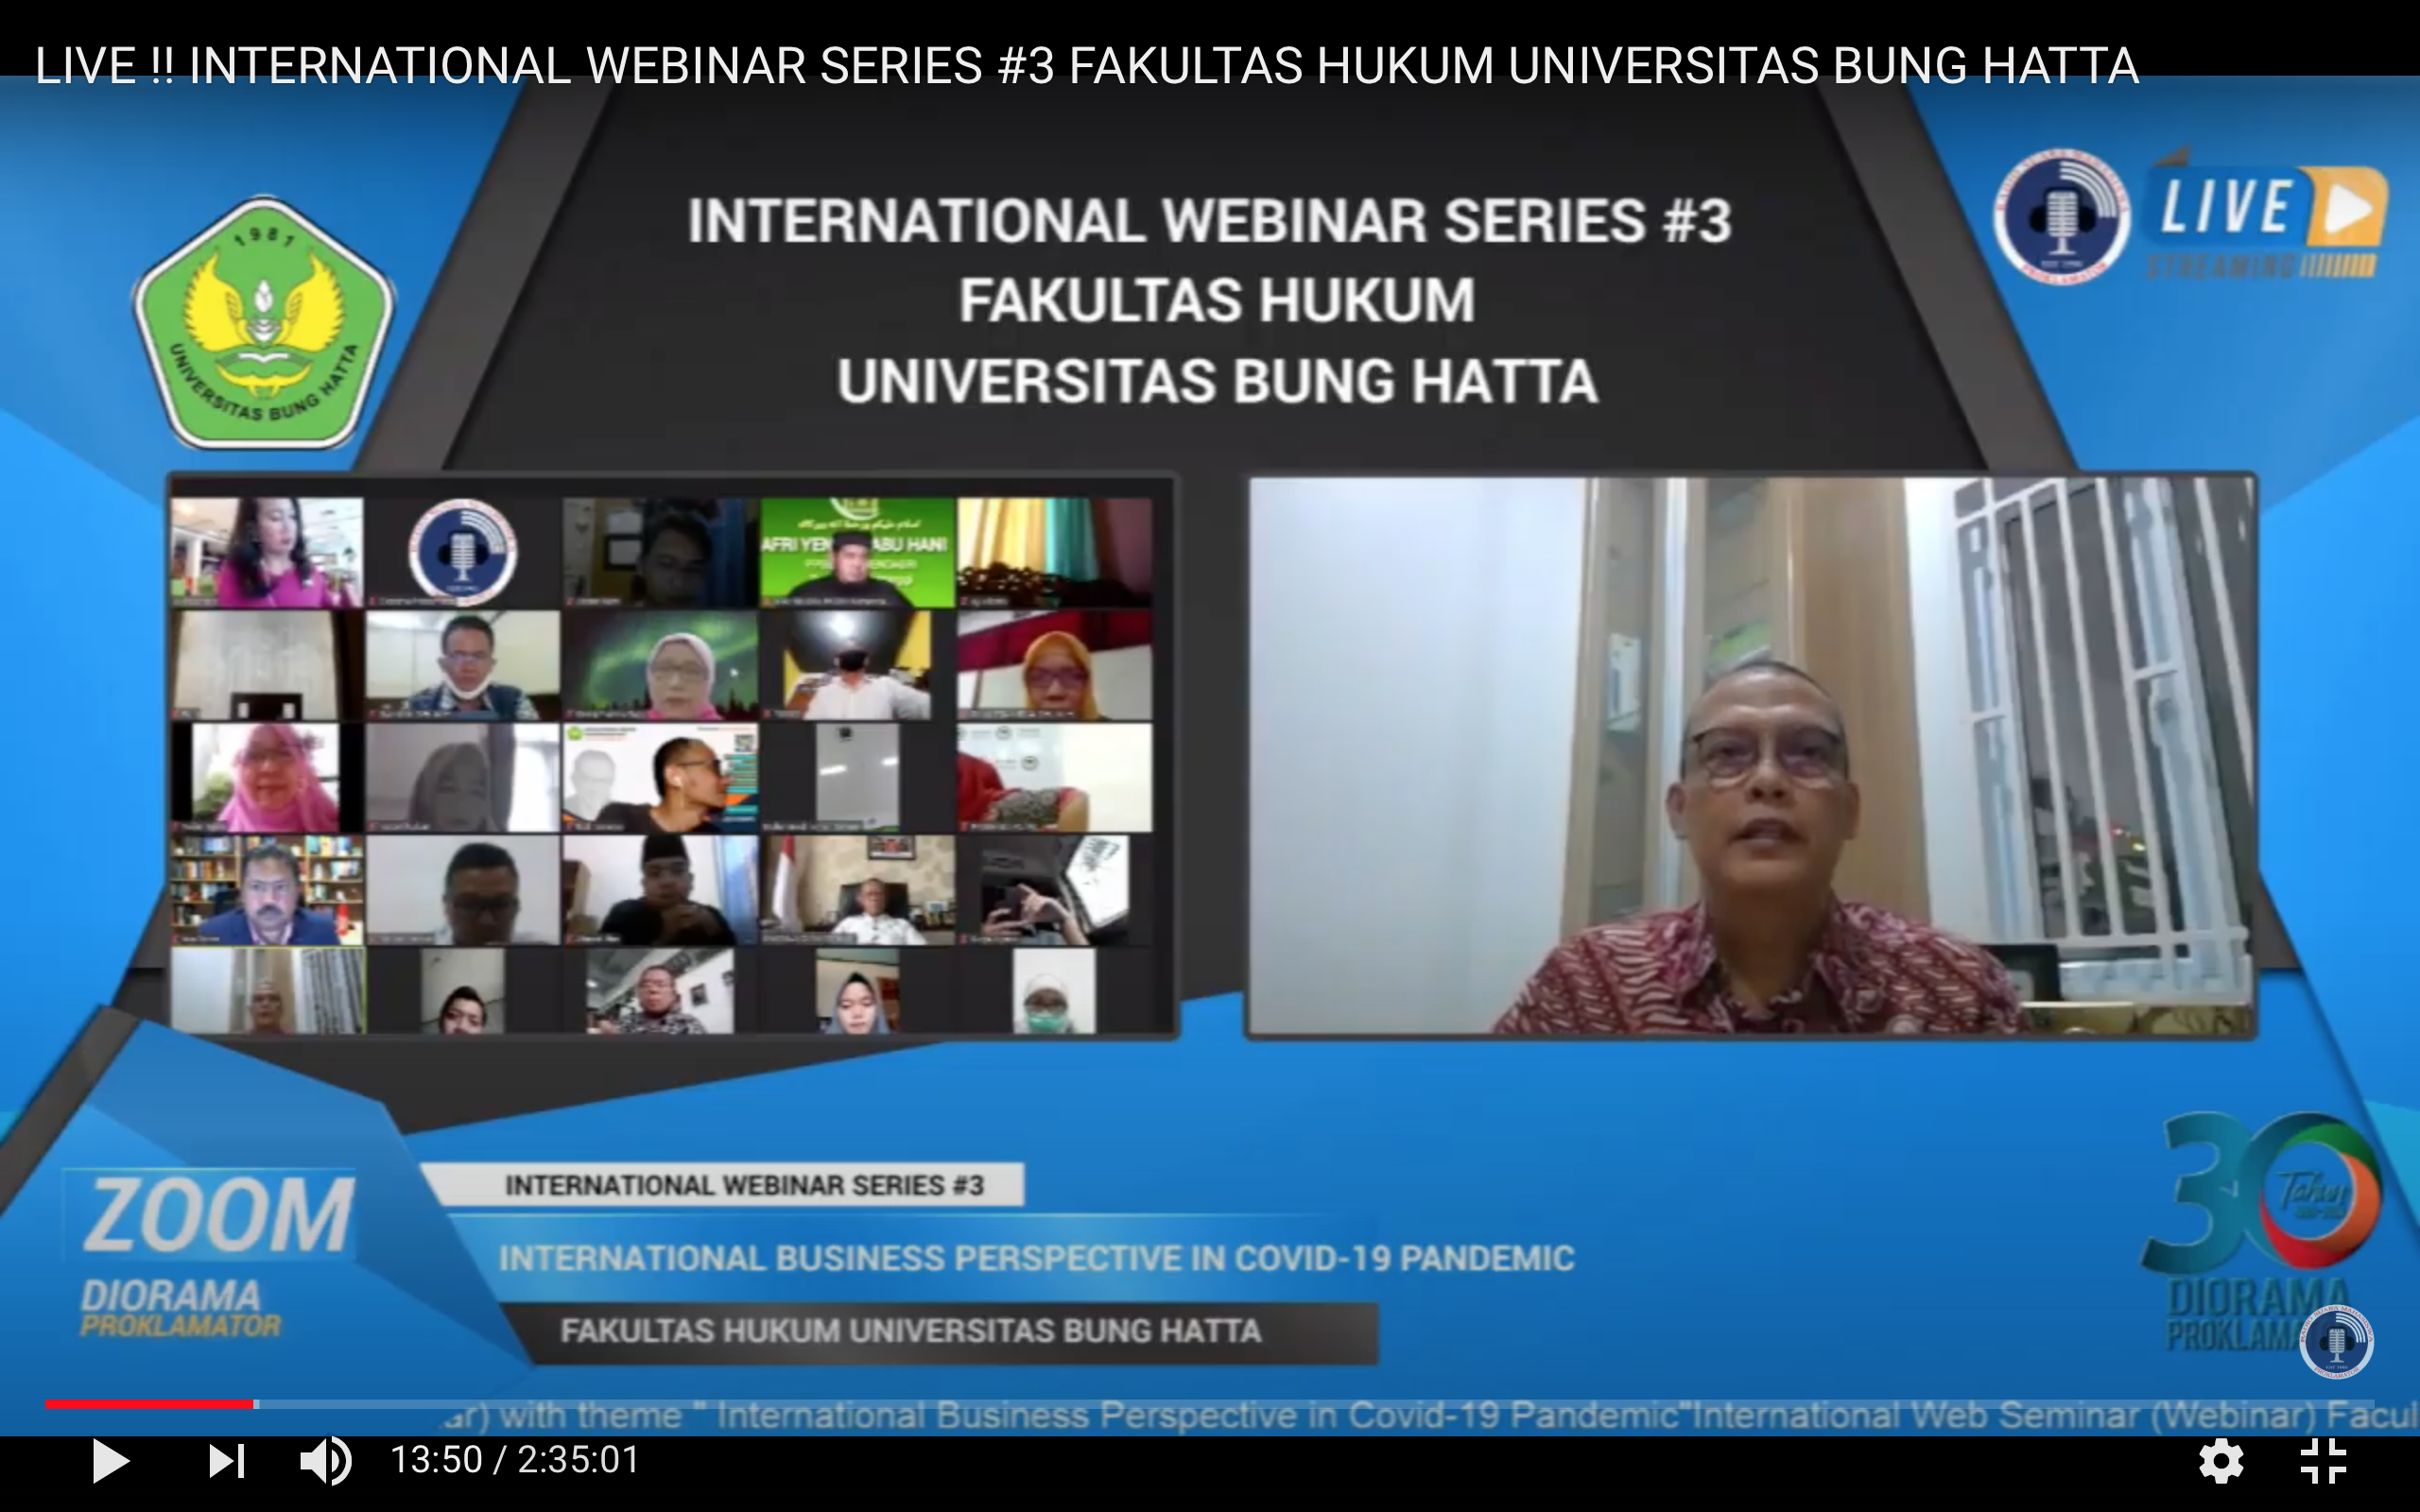 INTERNATIONAL WEBINAR SERIES #3 FH UNIVERSITAS BUNG HATTA (WEDNESDAY, 29 JULY 2020)